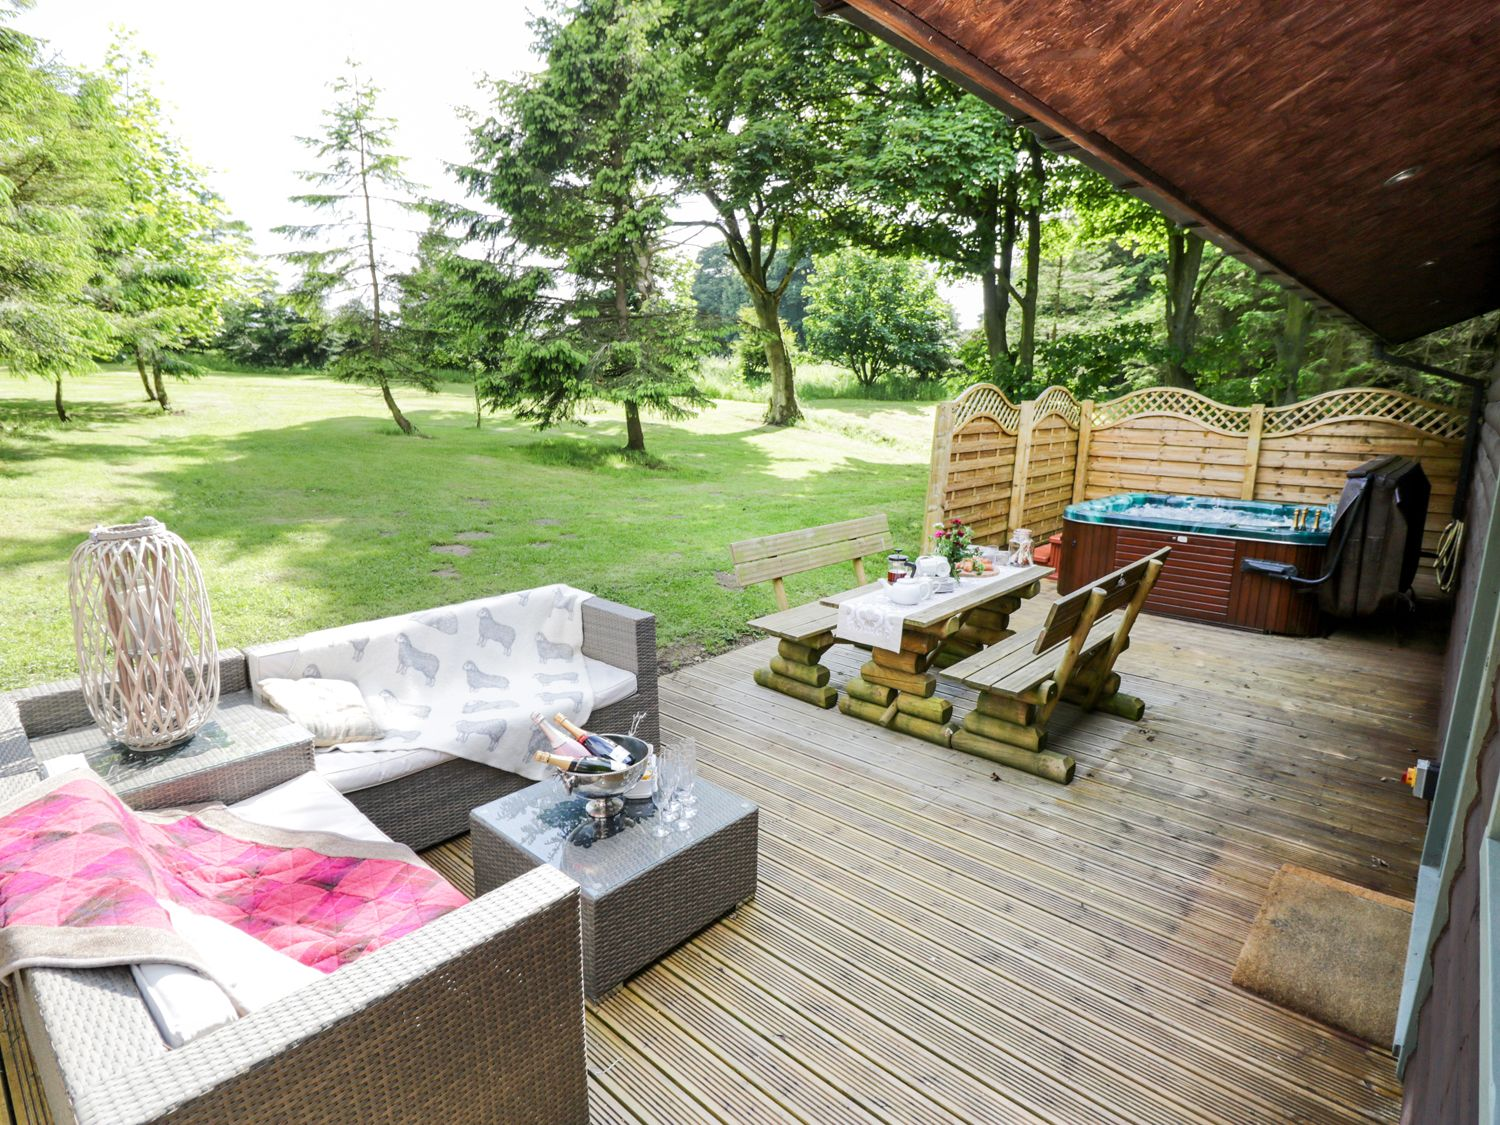 20 Lodges with Hot Tubs within a 90 minute drive of York  - pond farm woodlands